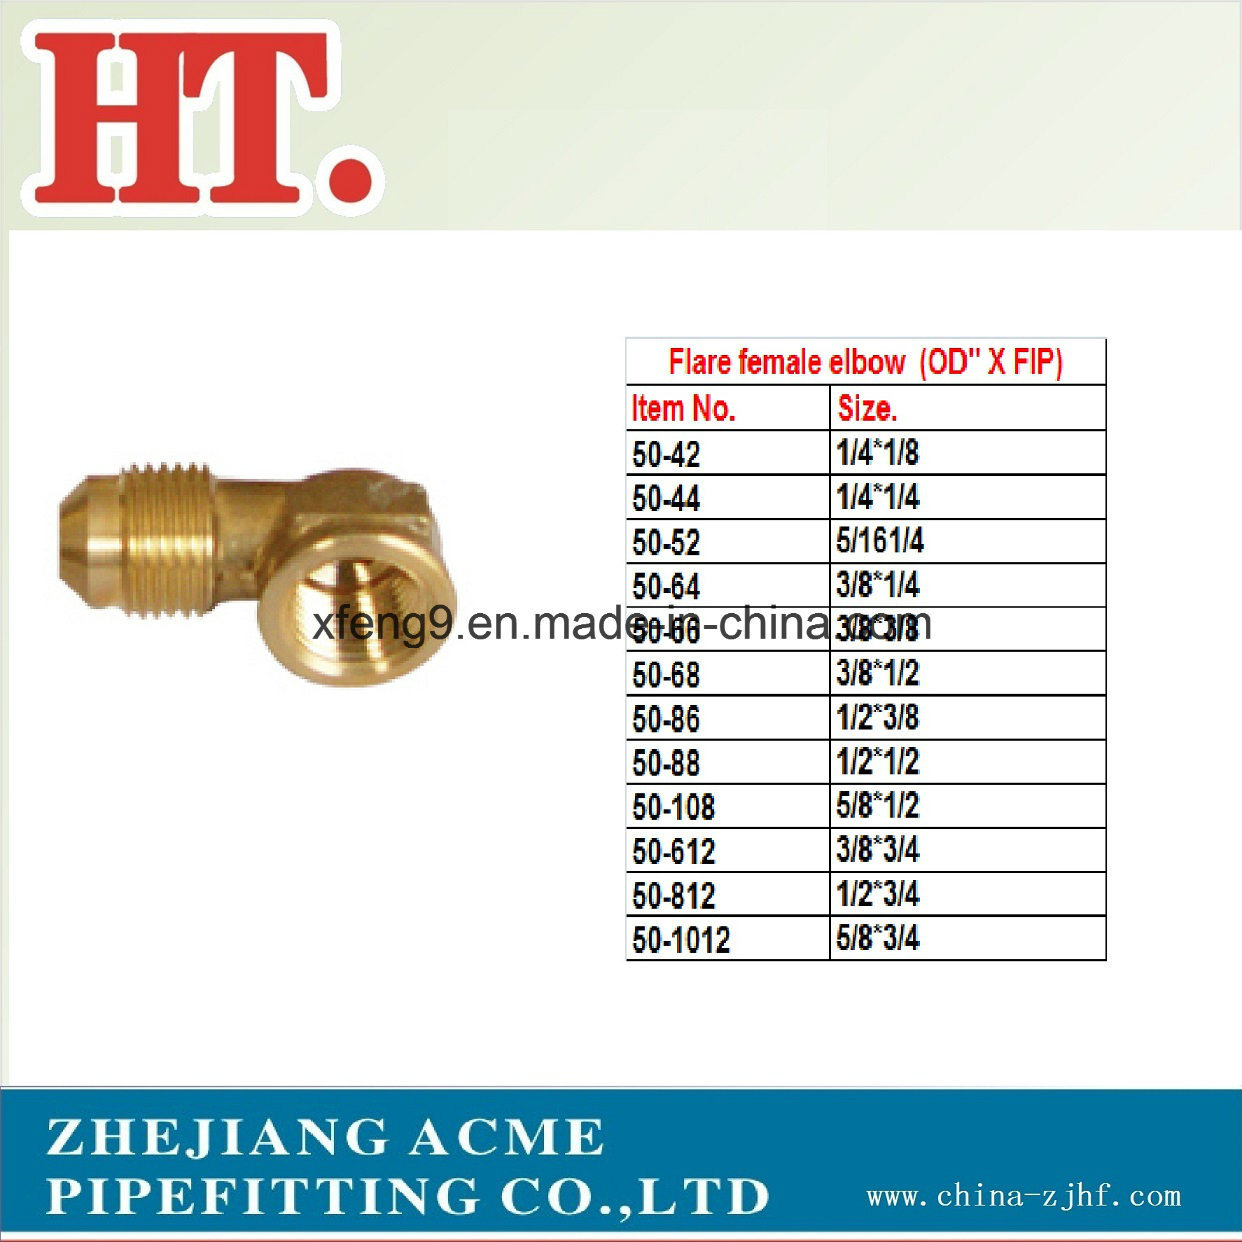 American Brass Flare Female Elbow (OD′′ X FIP) Fitting